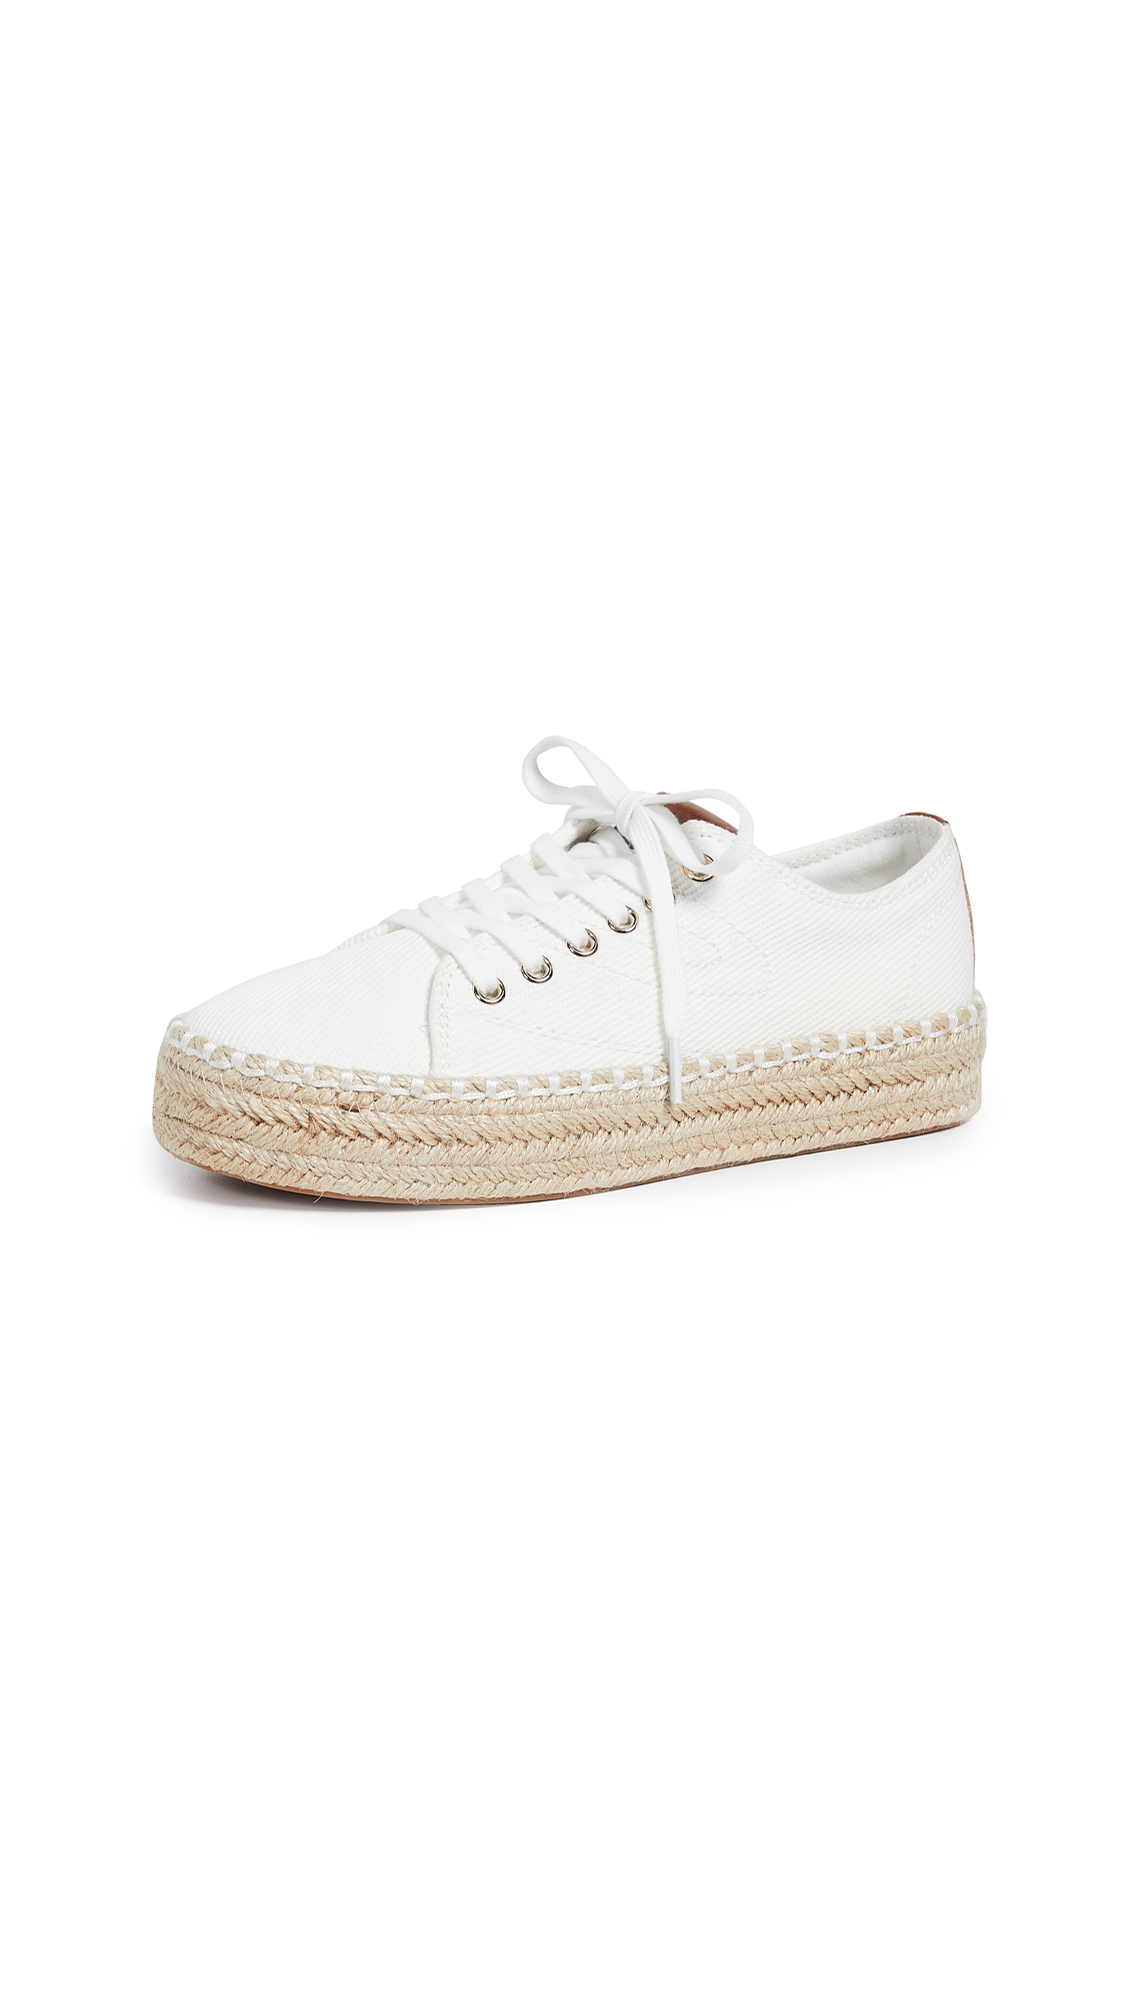 Tretorn Eve Lace Up Espadrille Sneakers - Vintage White